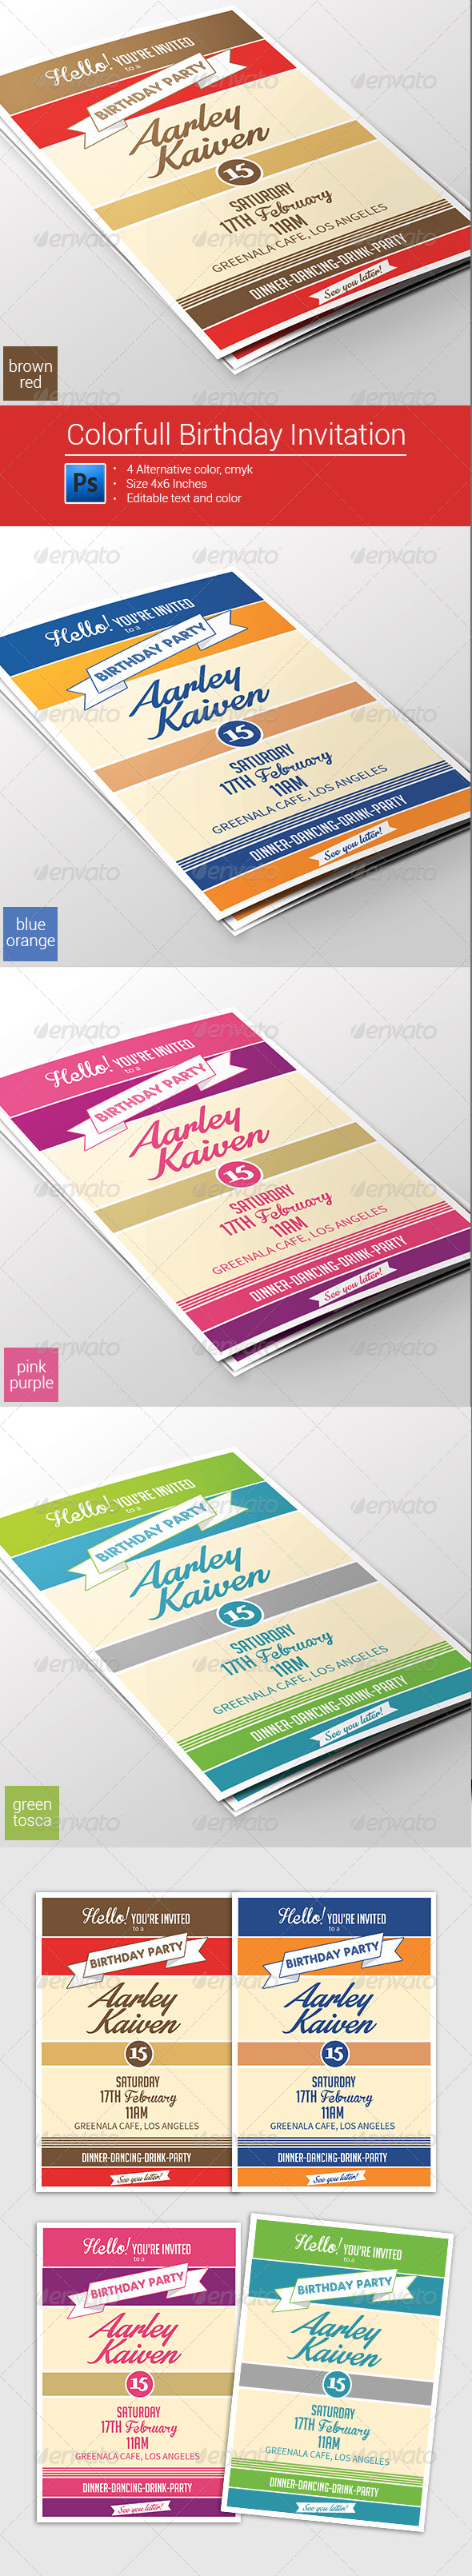 Colorfull Birthday Invitation